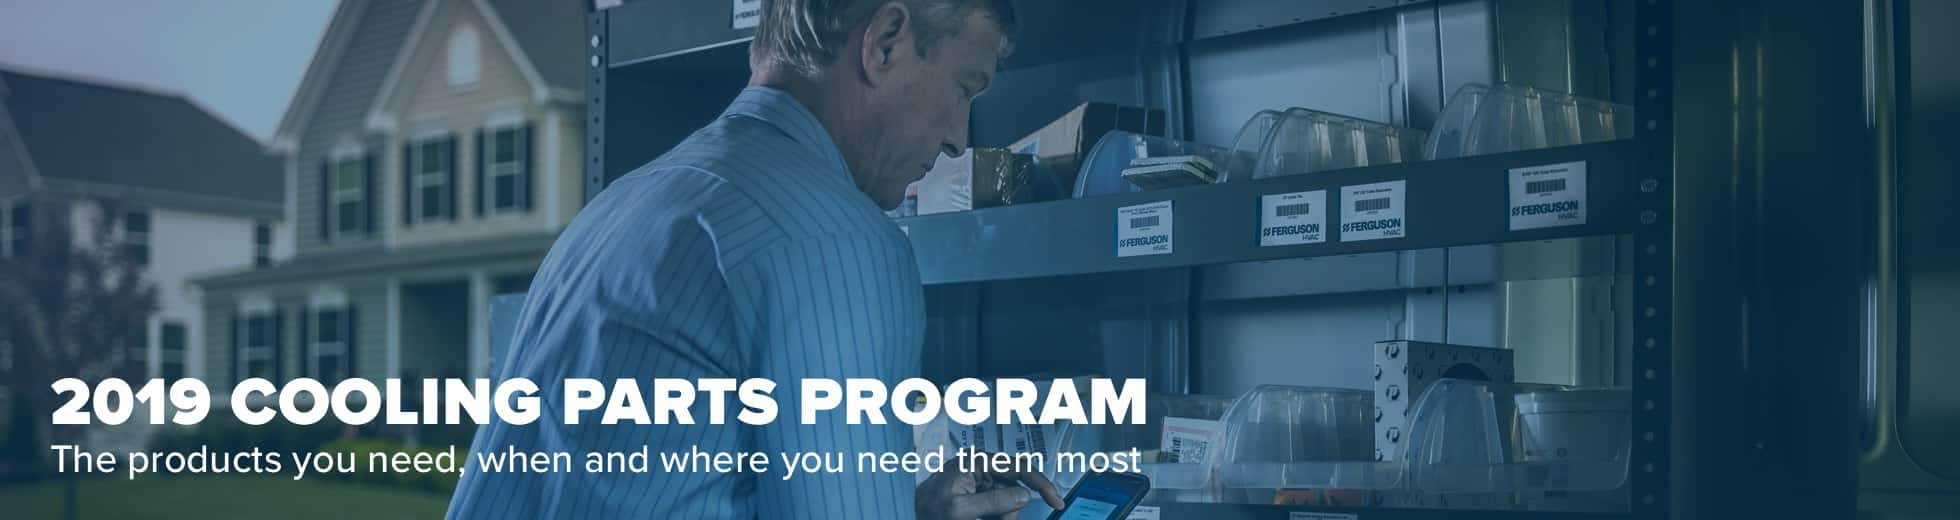 Air Conditioning and Cooling Repair Parts Program - Ferguson